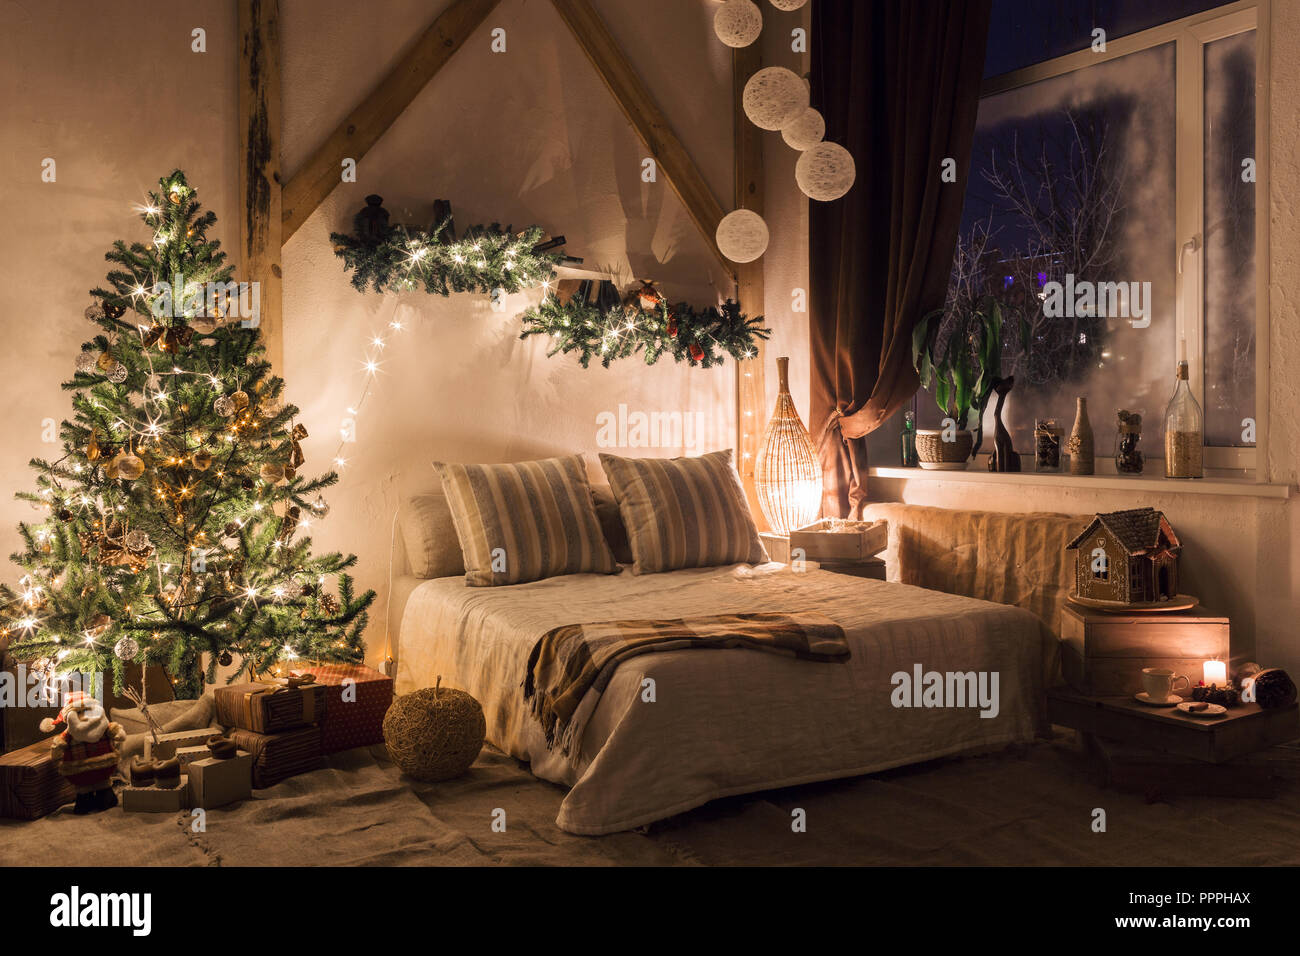 warm and cozy evening in living room. Sofa bed In christmas Interior. concept the new year and holidays. - Stock Image